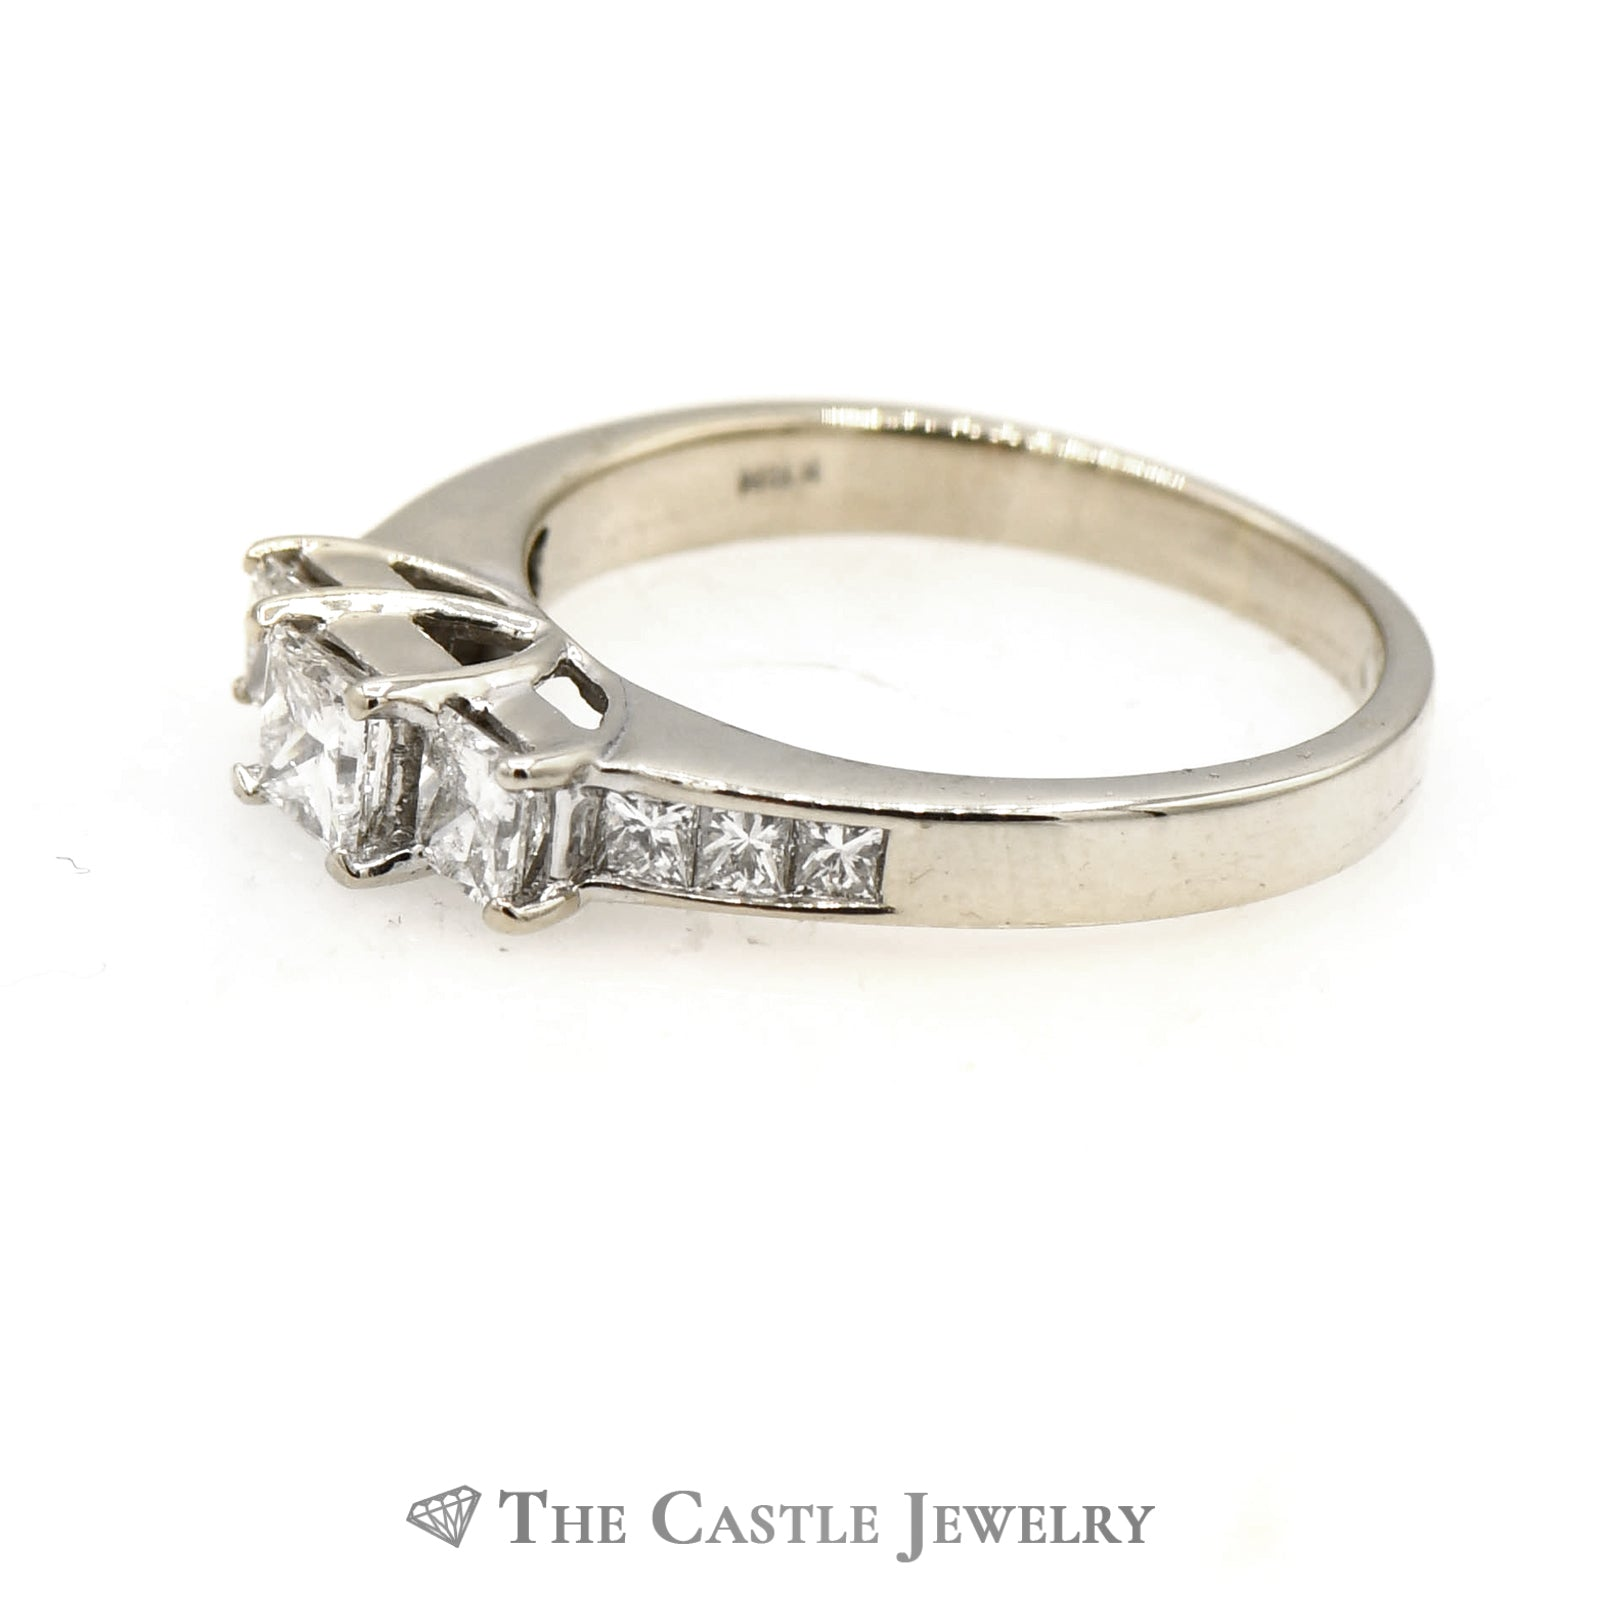 1cttw Princess Cut Debeers Style Diamond Ring with Accents in 14k White Gold-2